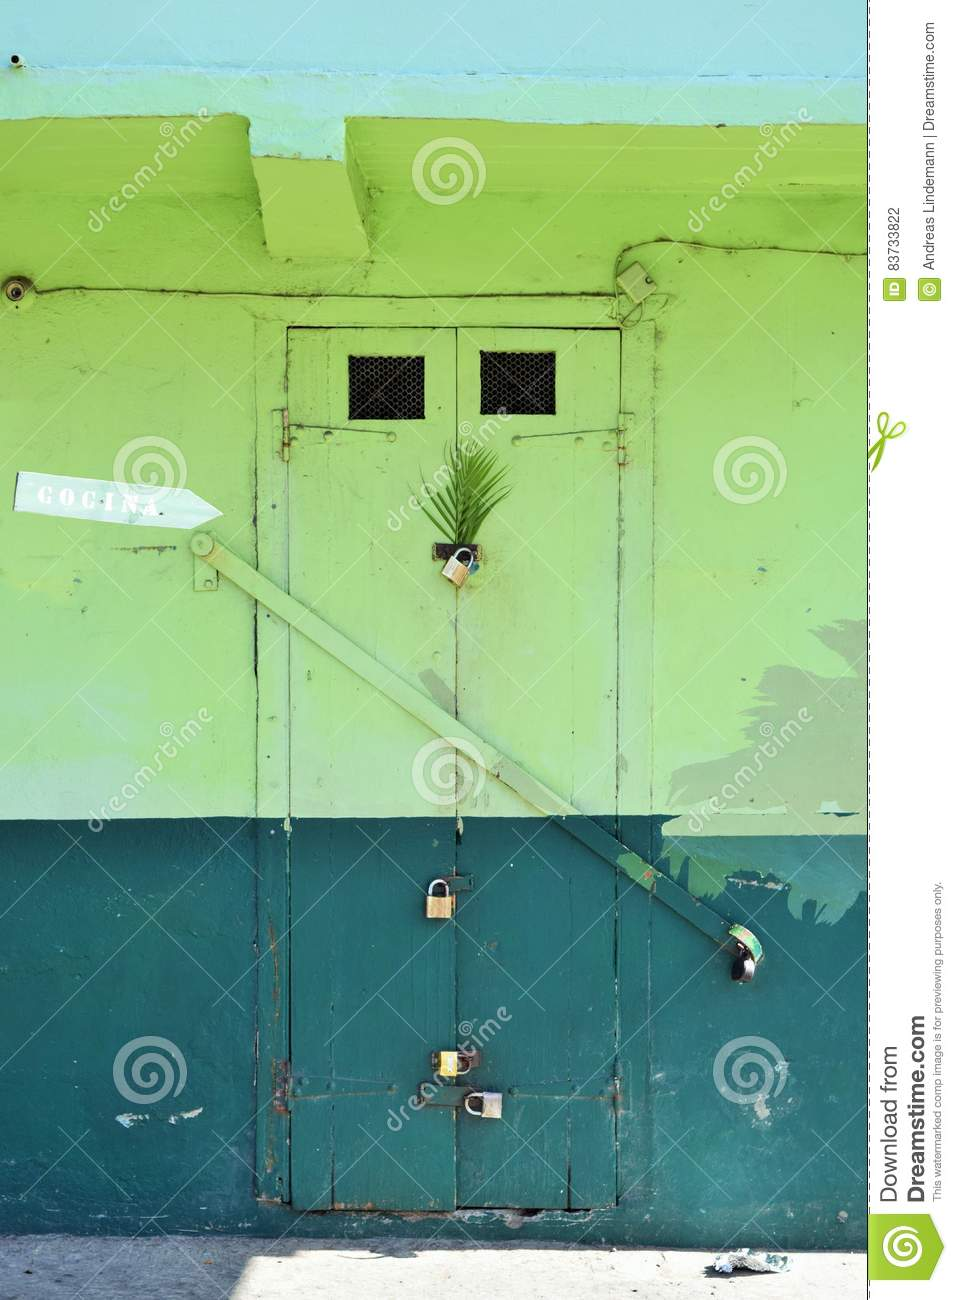 Multiple Secured Door In A Warehouse Stock Photo & Multiple Secured Door In A Warehouse Stock Photo - Image: 83733822 Pezcame.Com